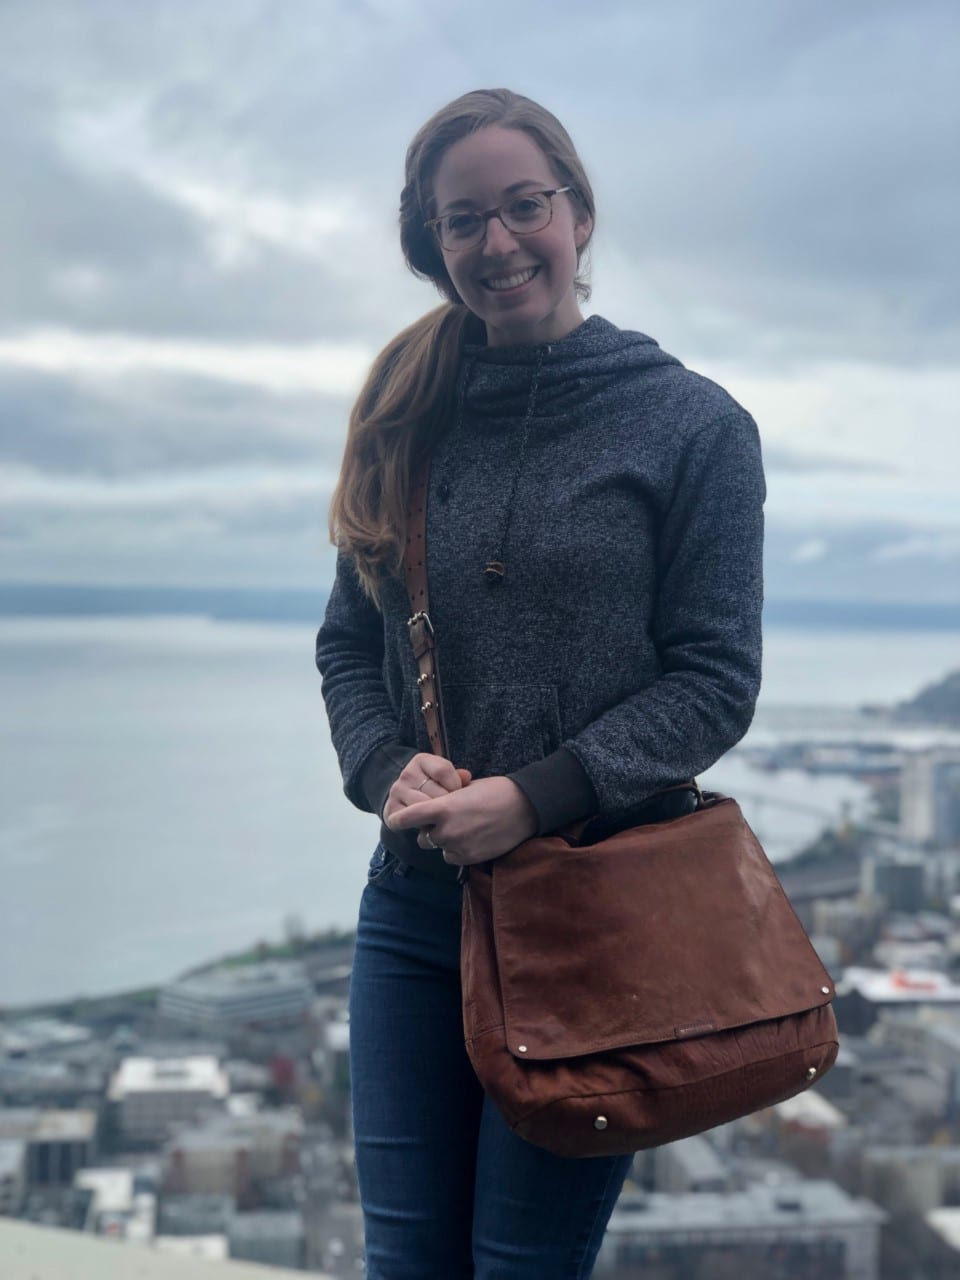 Zoeanna Mayhook at the Seattle Space Needle